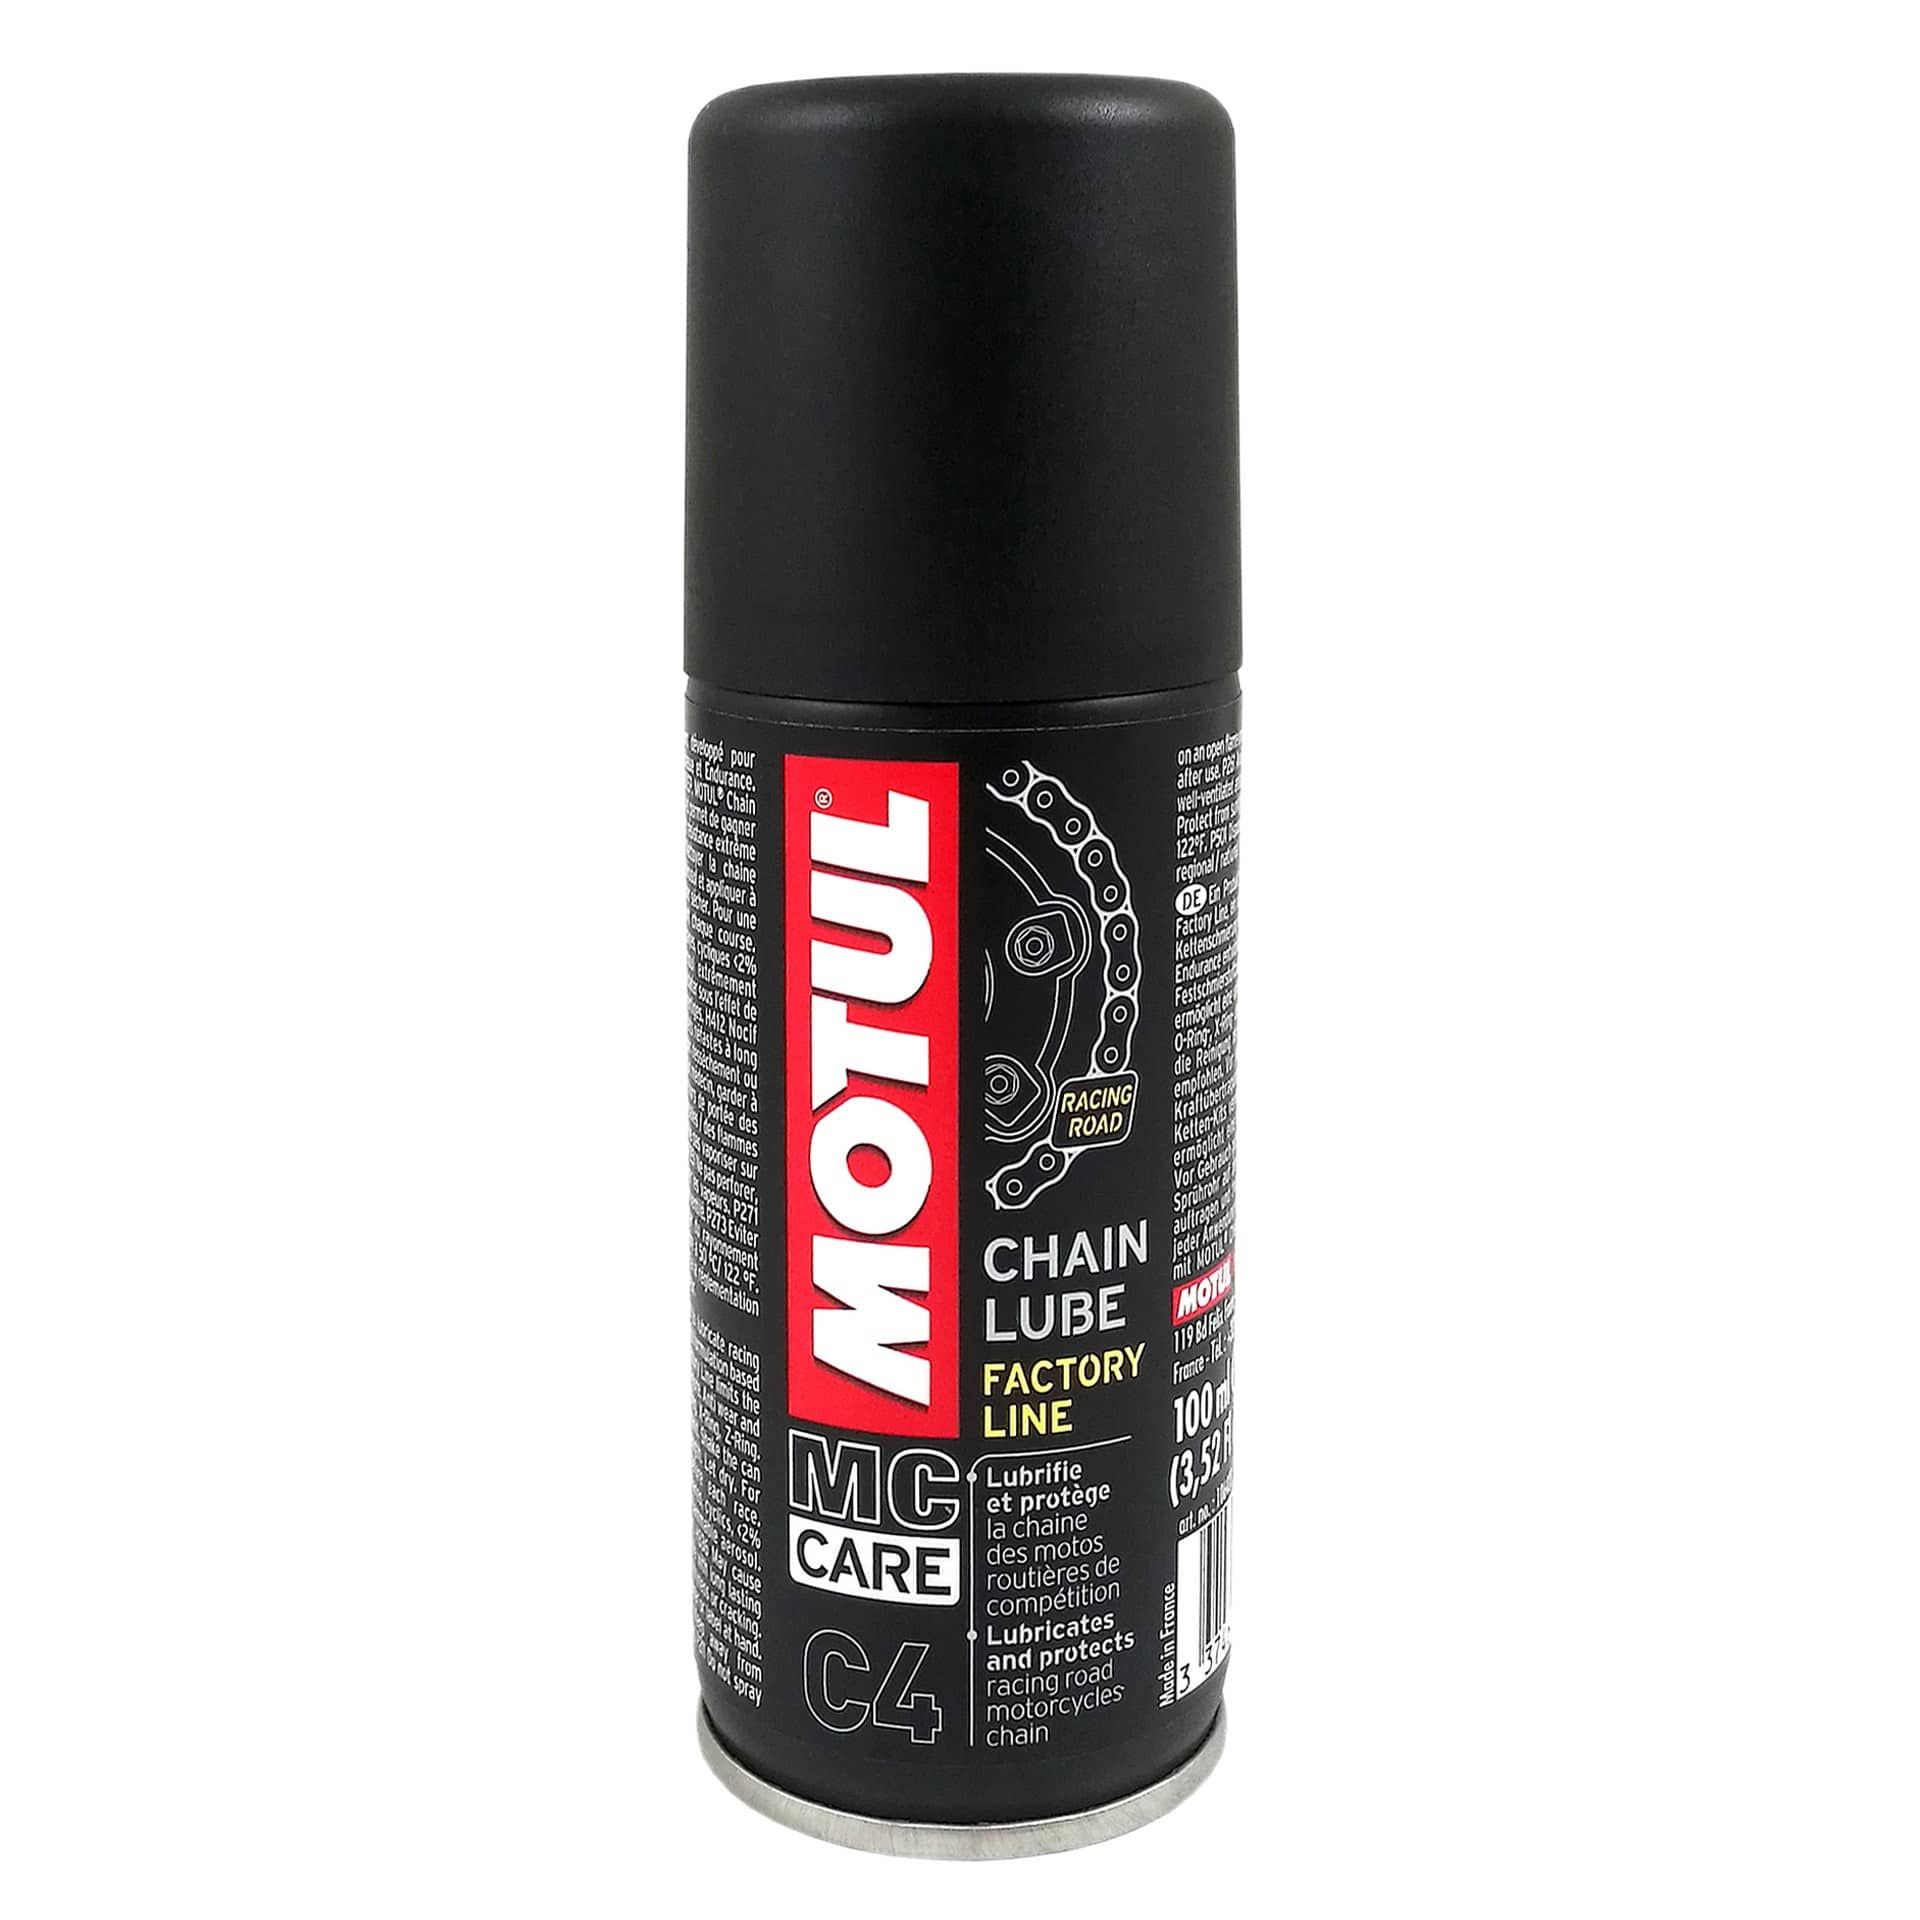 Motul смазка для цепи C4 Chain Luber FL/100ml/ в интернет-магазине Мотомода